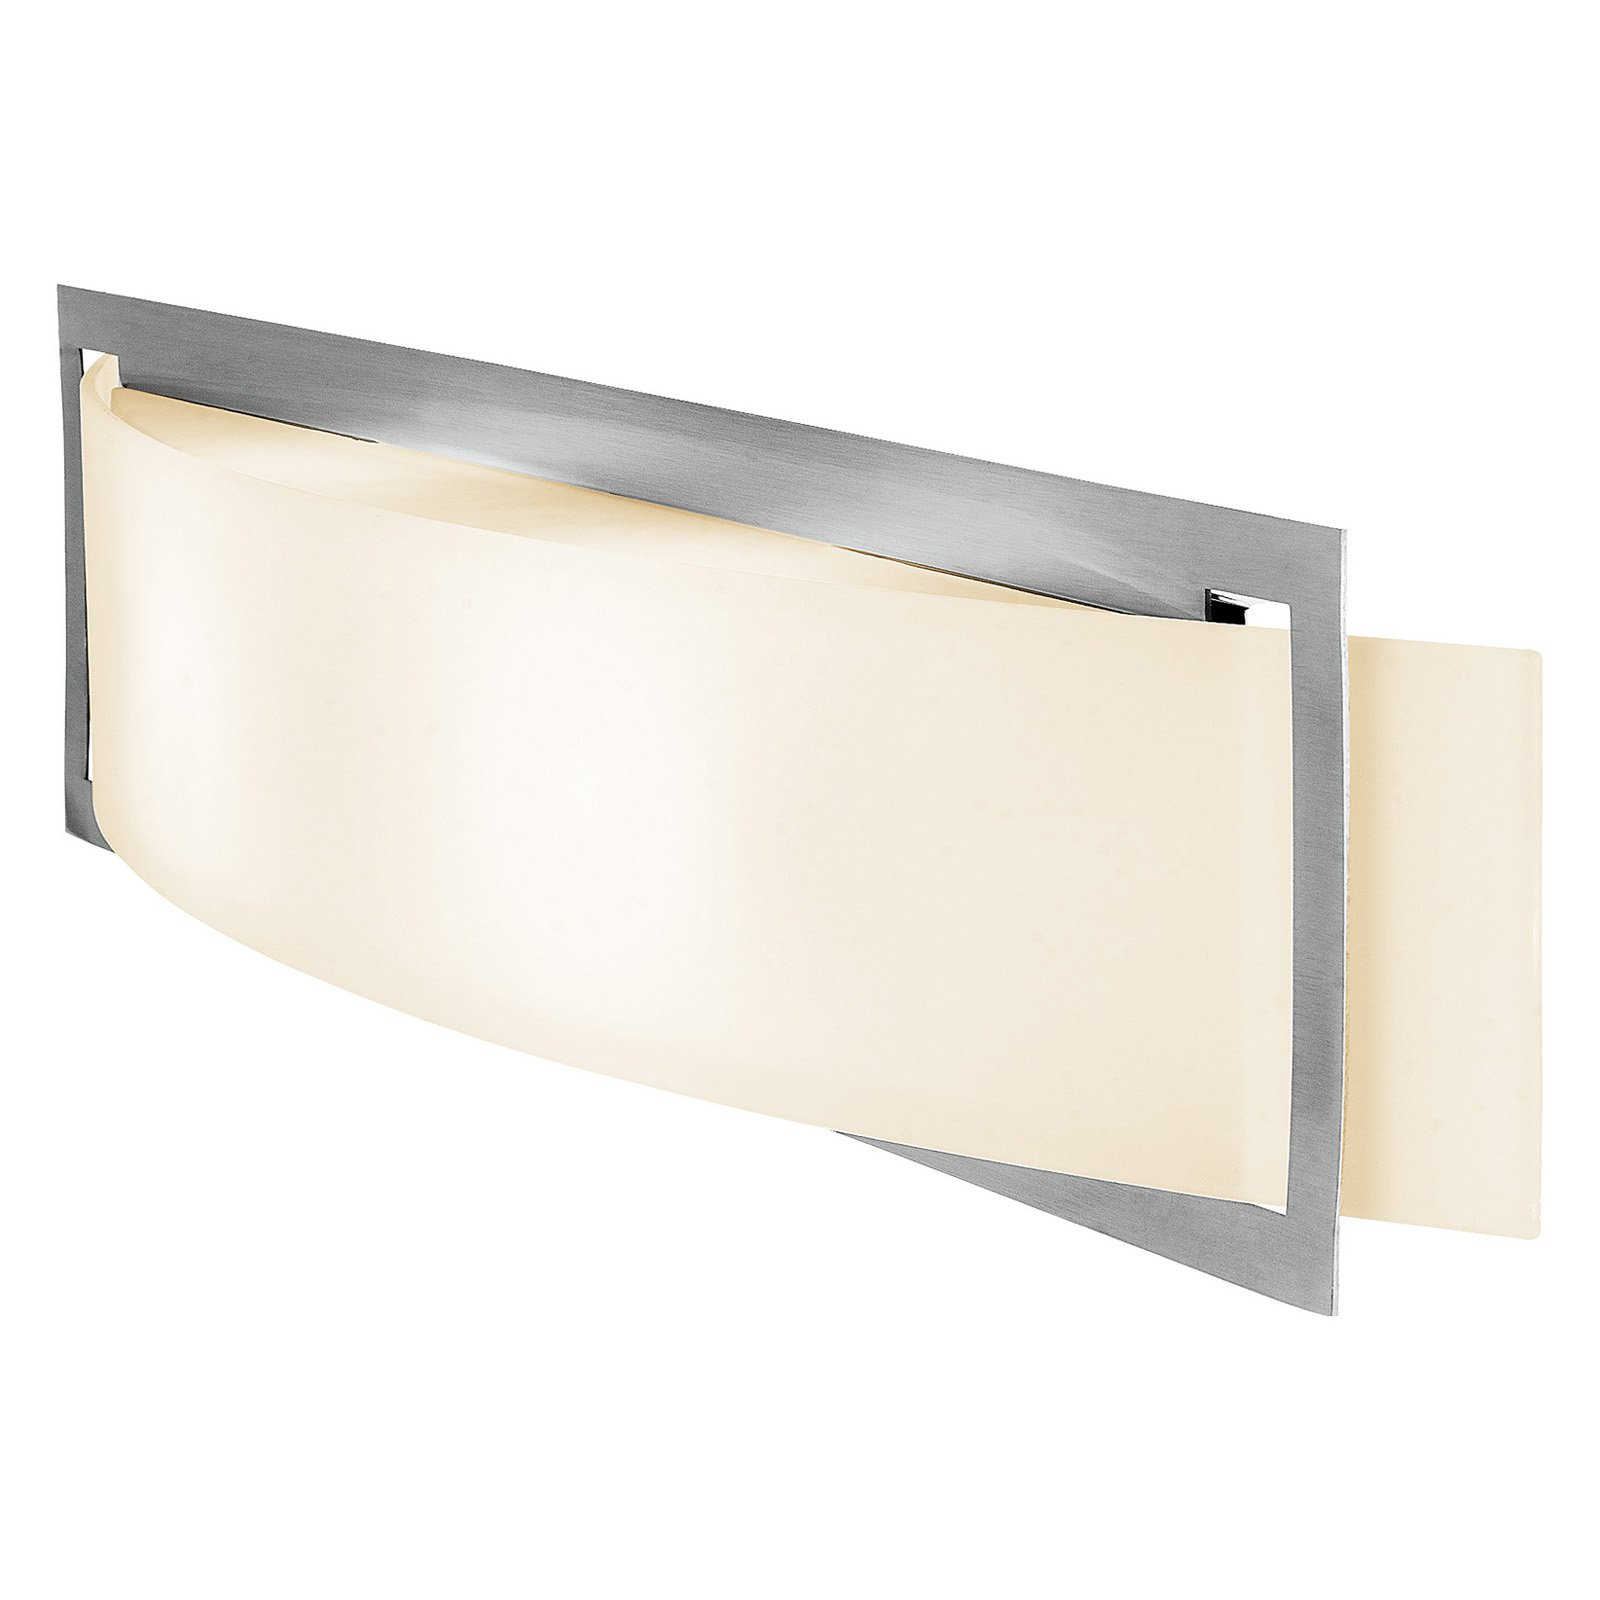 Access Lighting Argon 62105LED-BS OPL Wall Sconce by Access